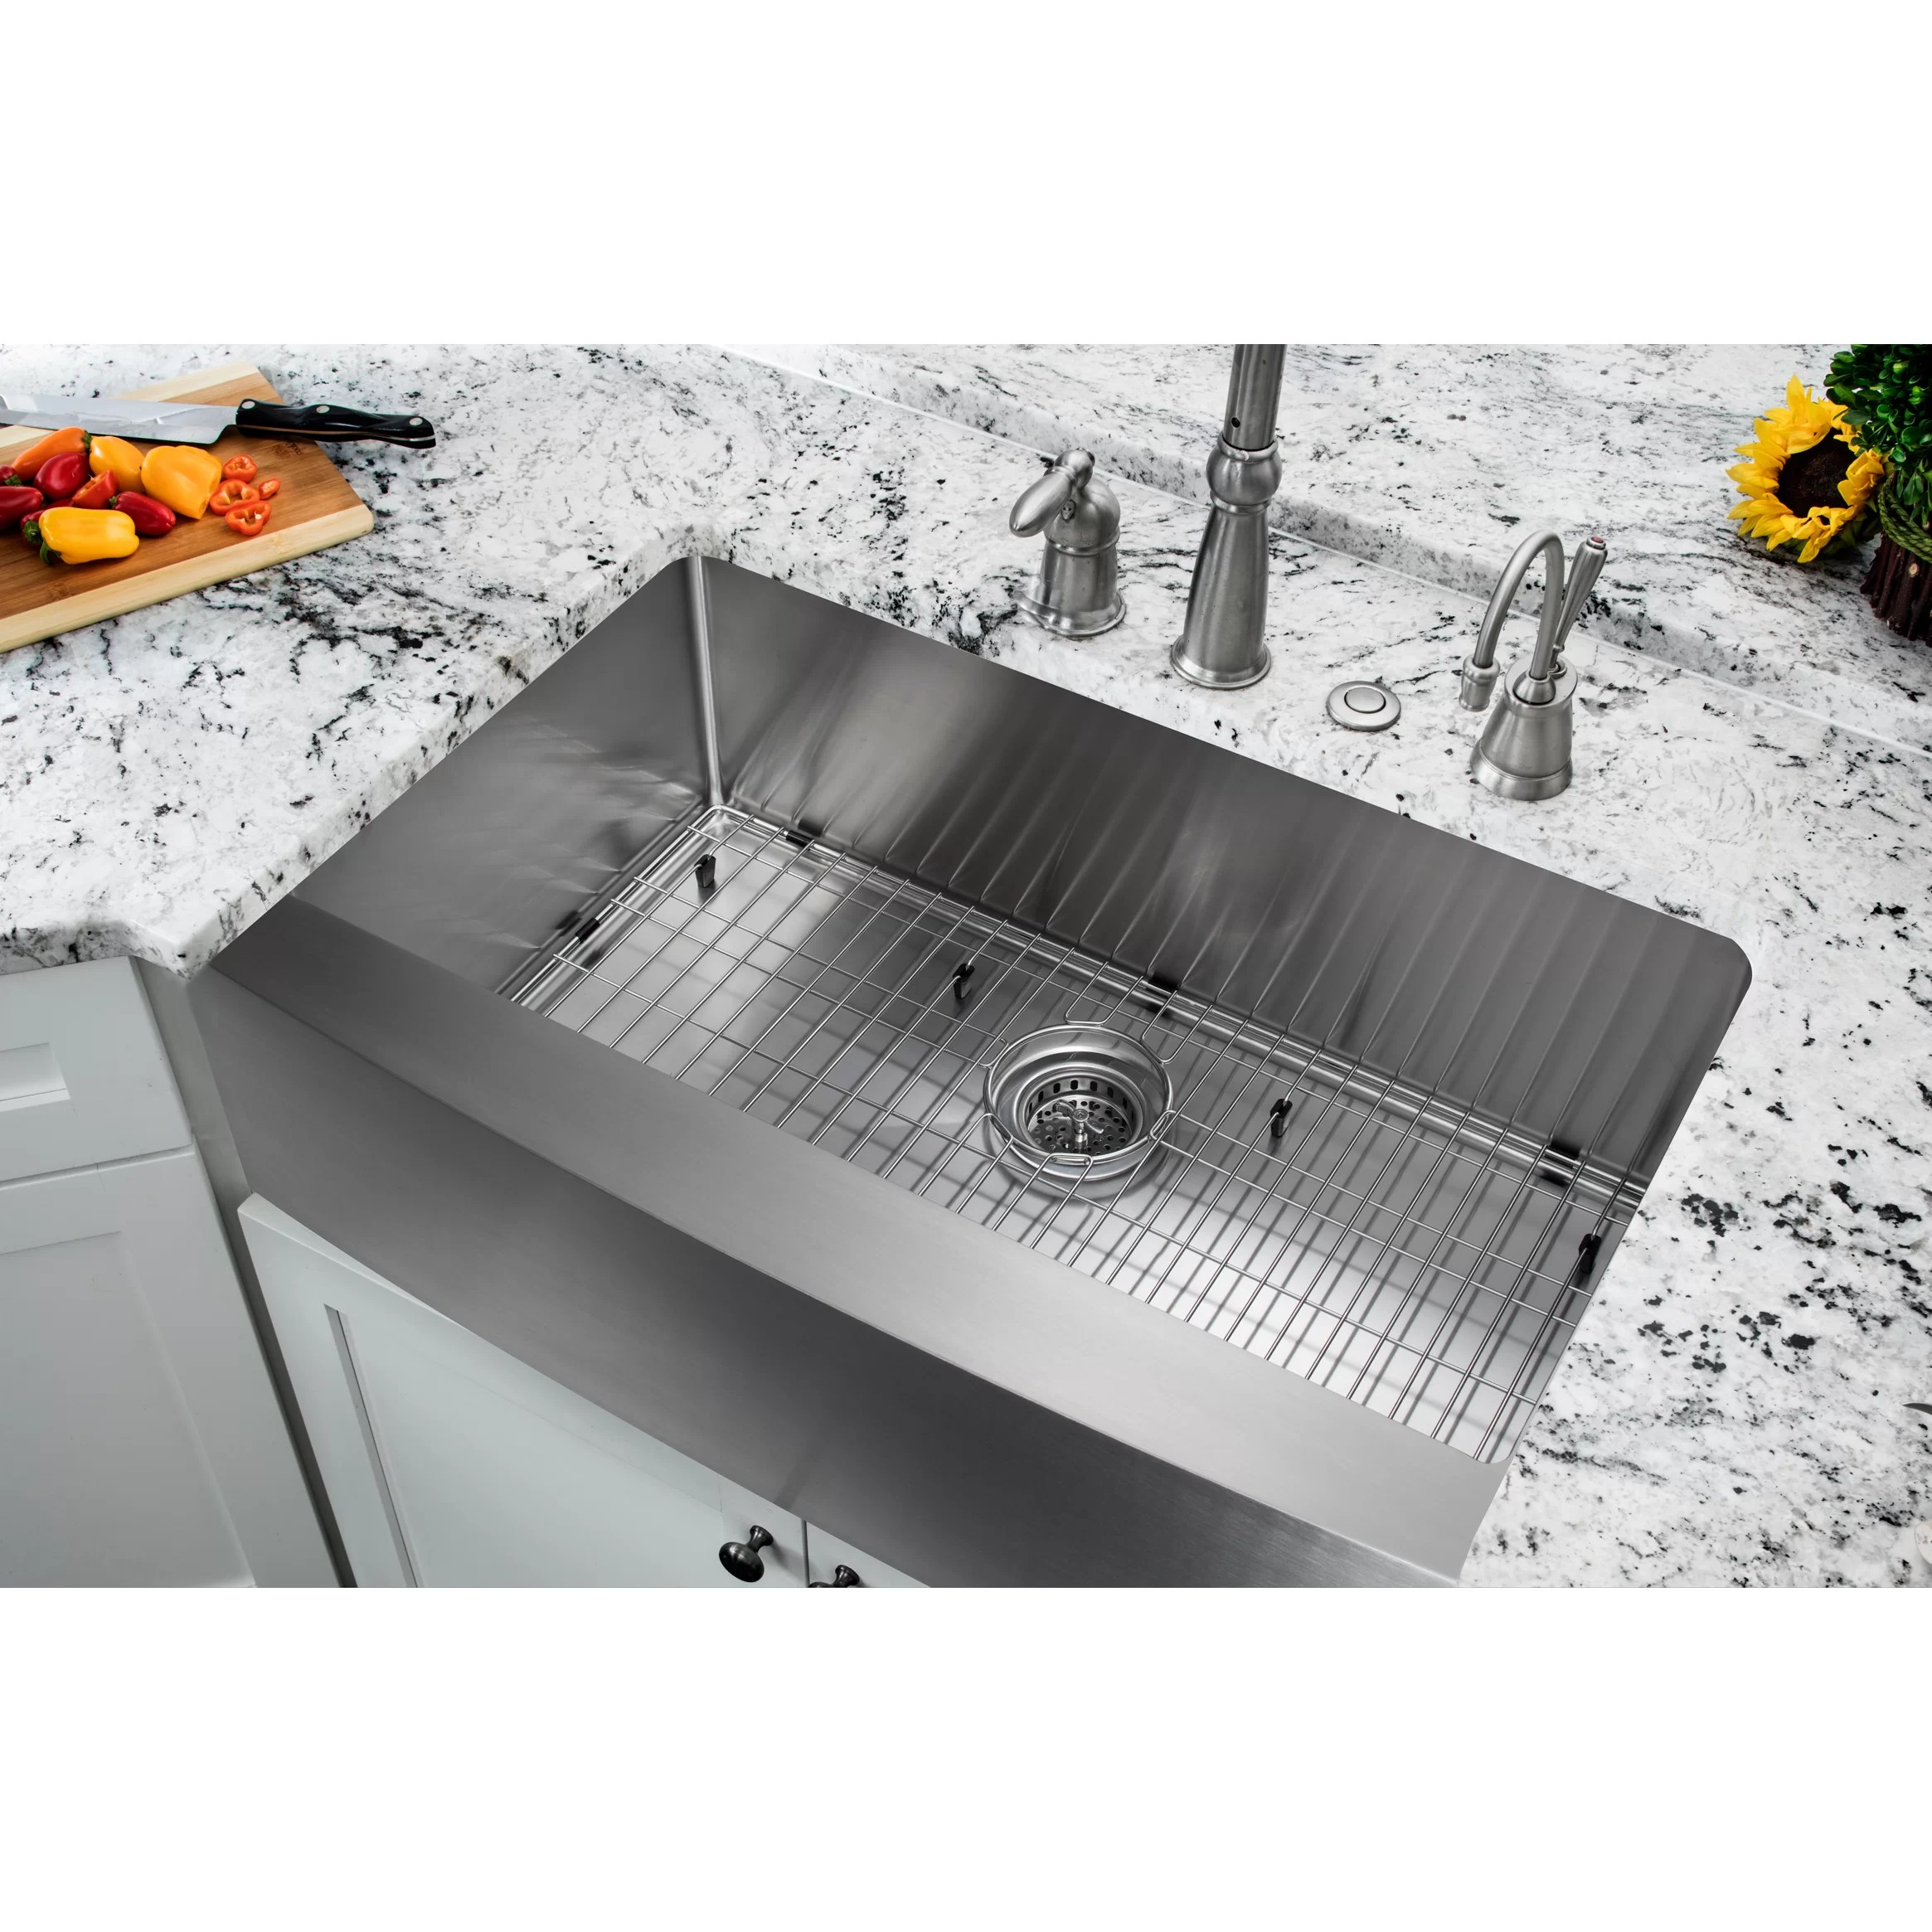 farmhouse apron single kitchen sinks c a~ a~ stainless kitchen sinks 32 20 75 Single Bowl Farmhouse Apron Kitchen Sink